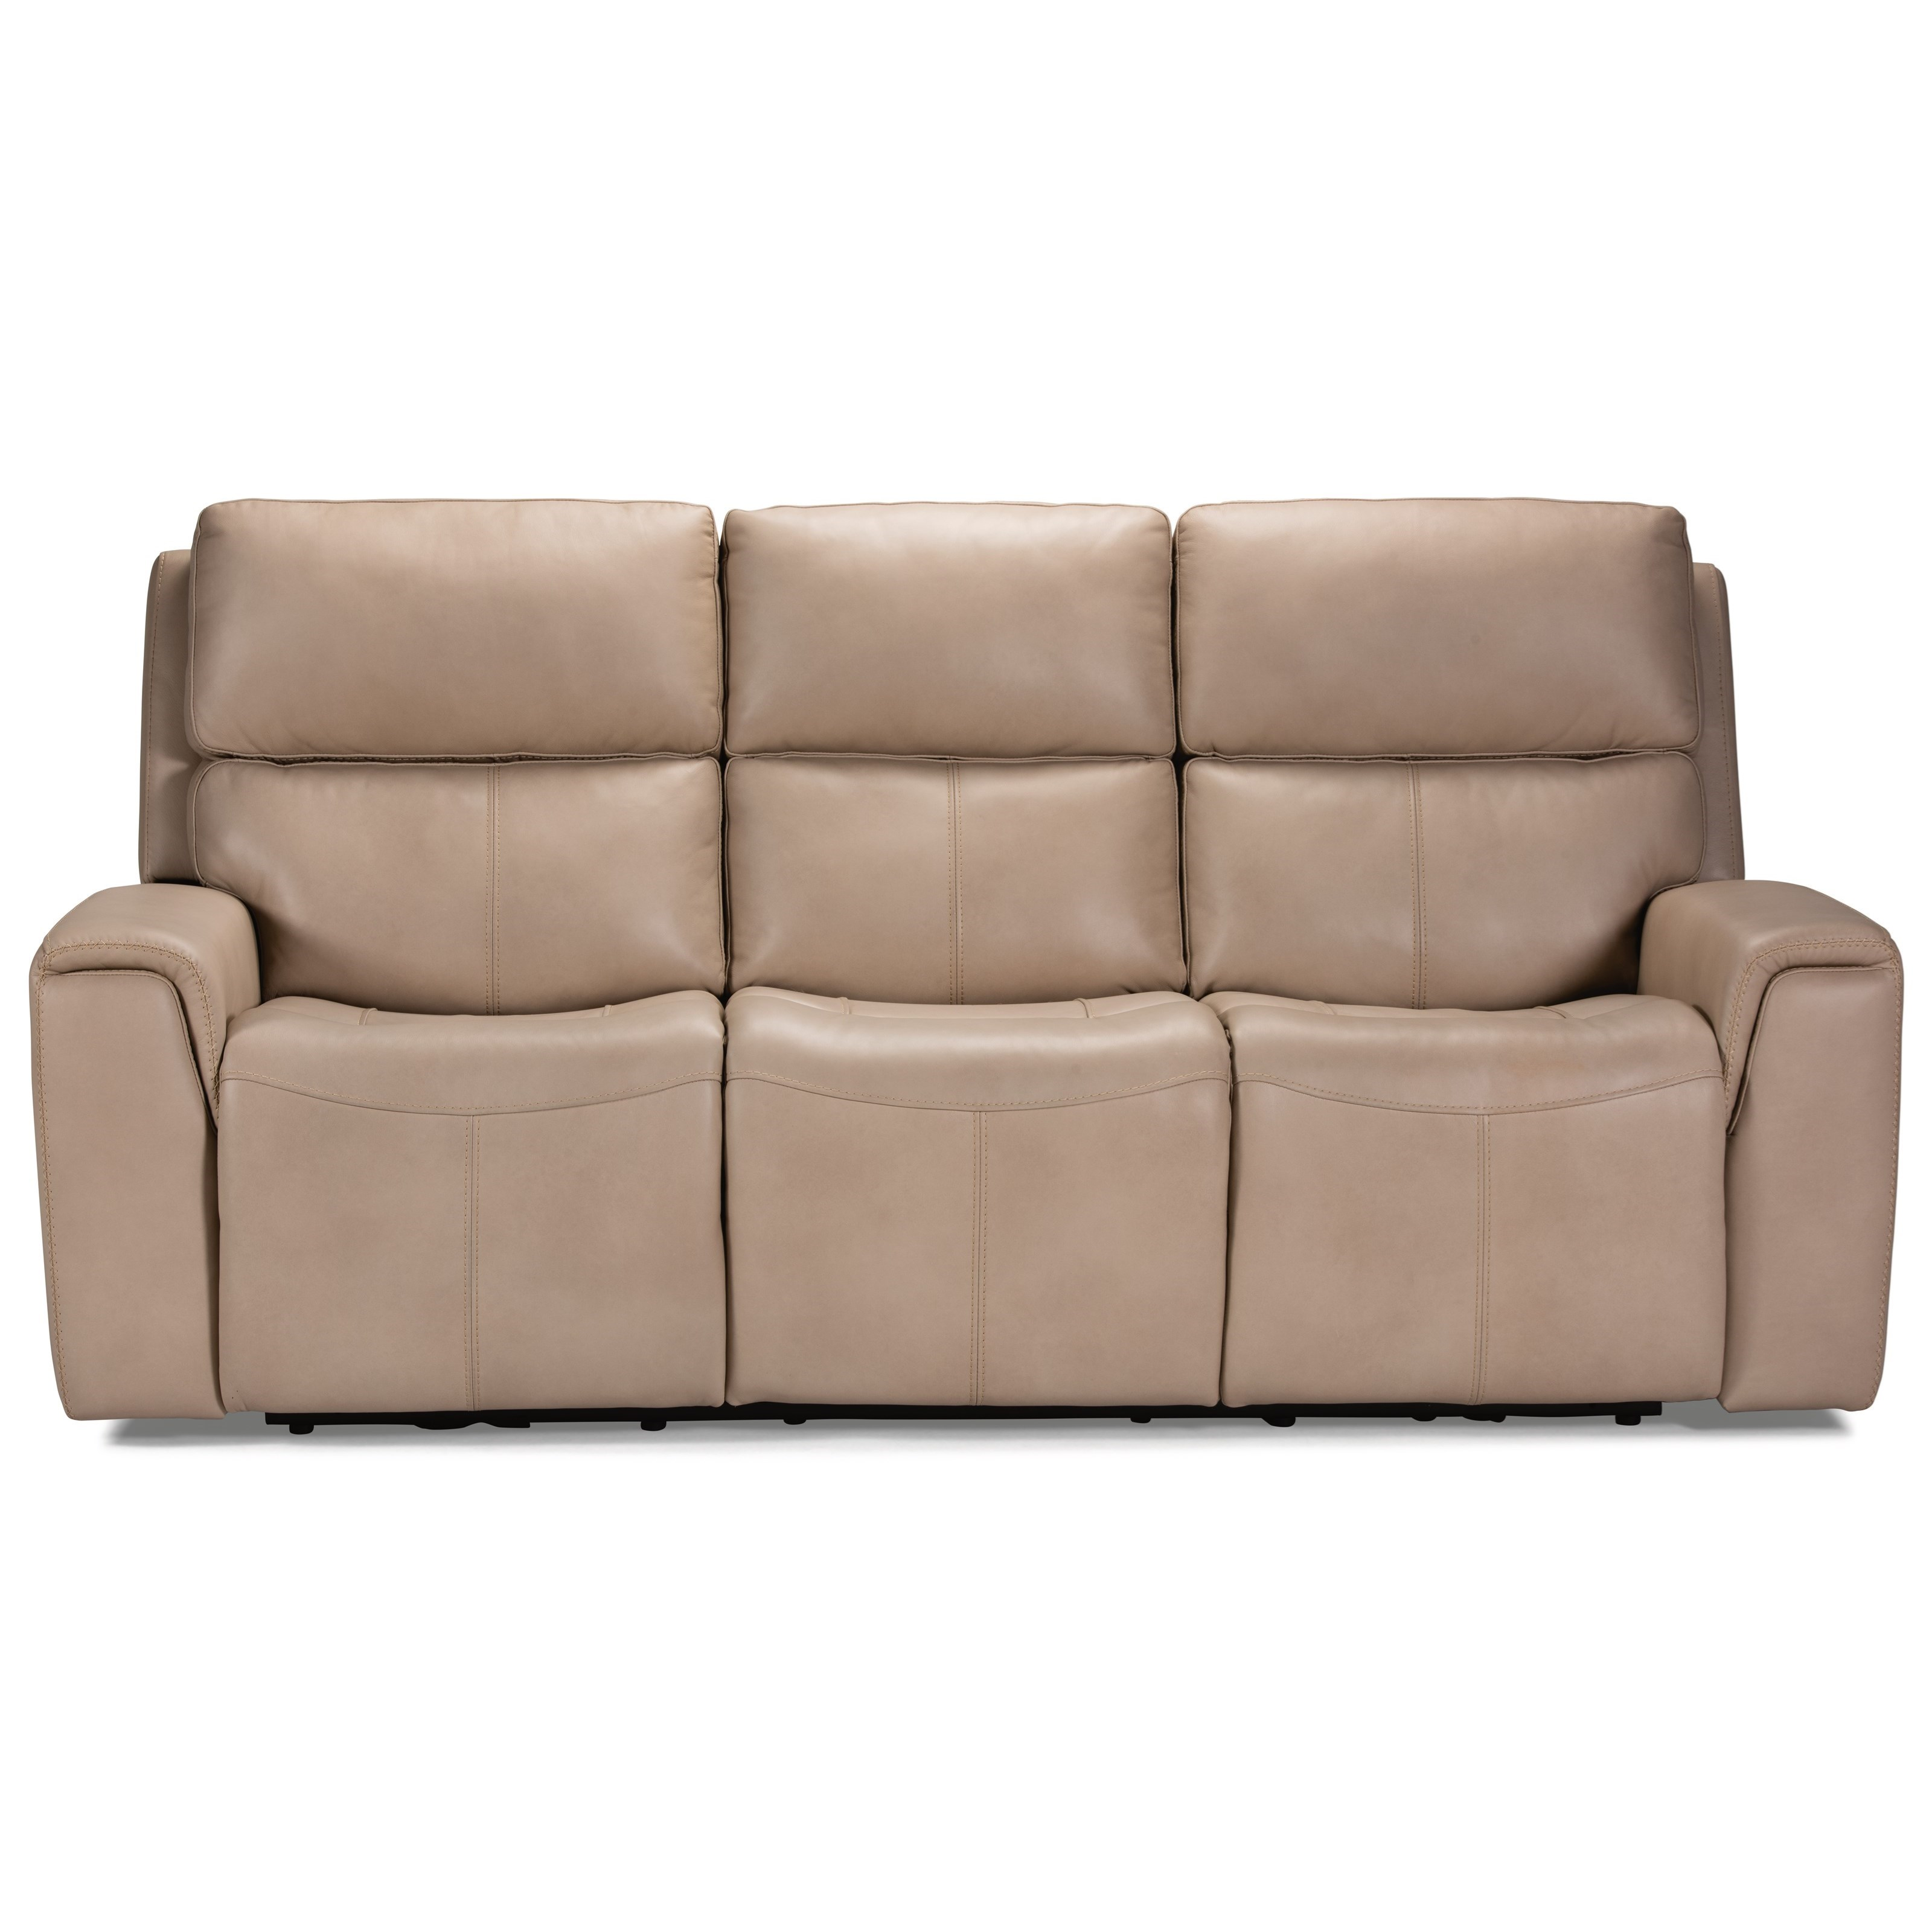 Latitudes - Jarvis Power Reclining Sofa by Flexsteel at Westrich Furniture & Appliances